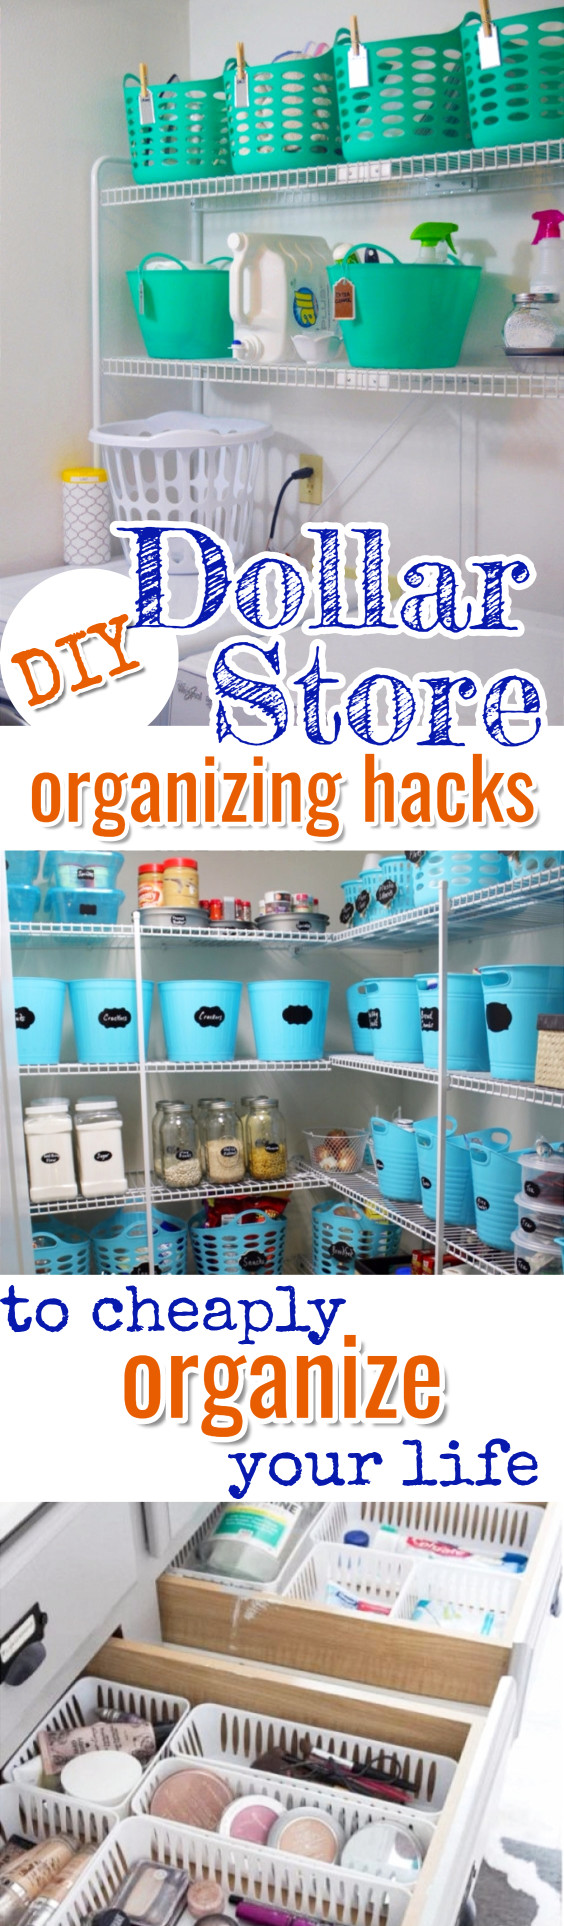 Dollar Store Organizing on a Budget - Cheap organizing ideas from dollar stores